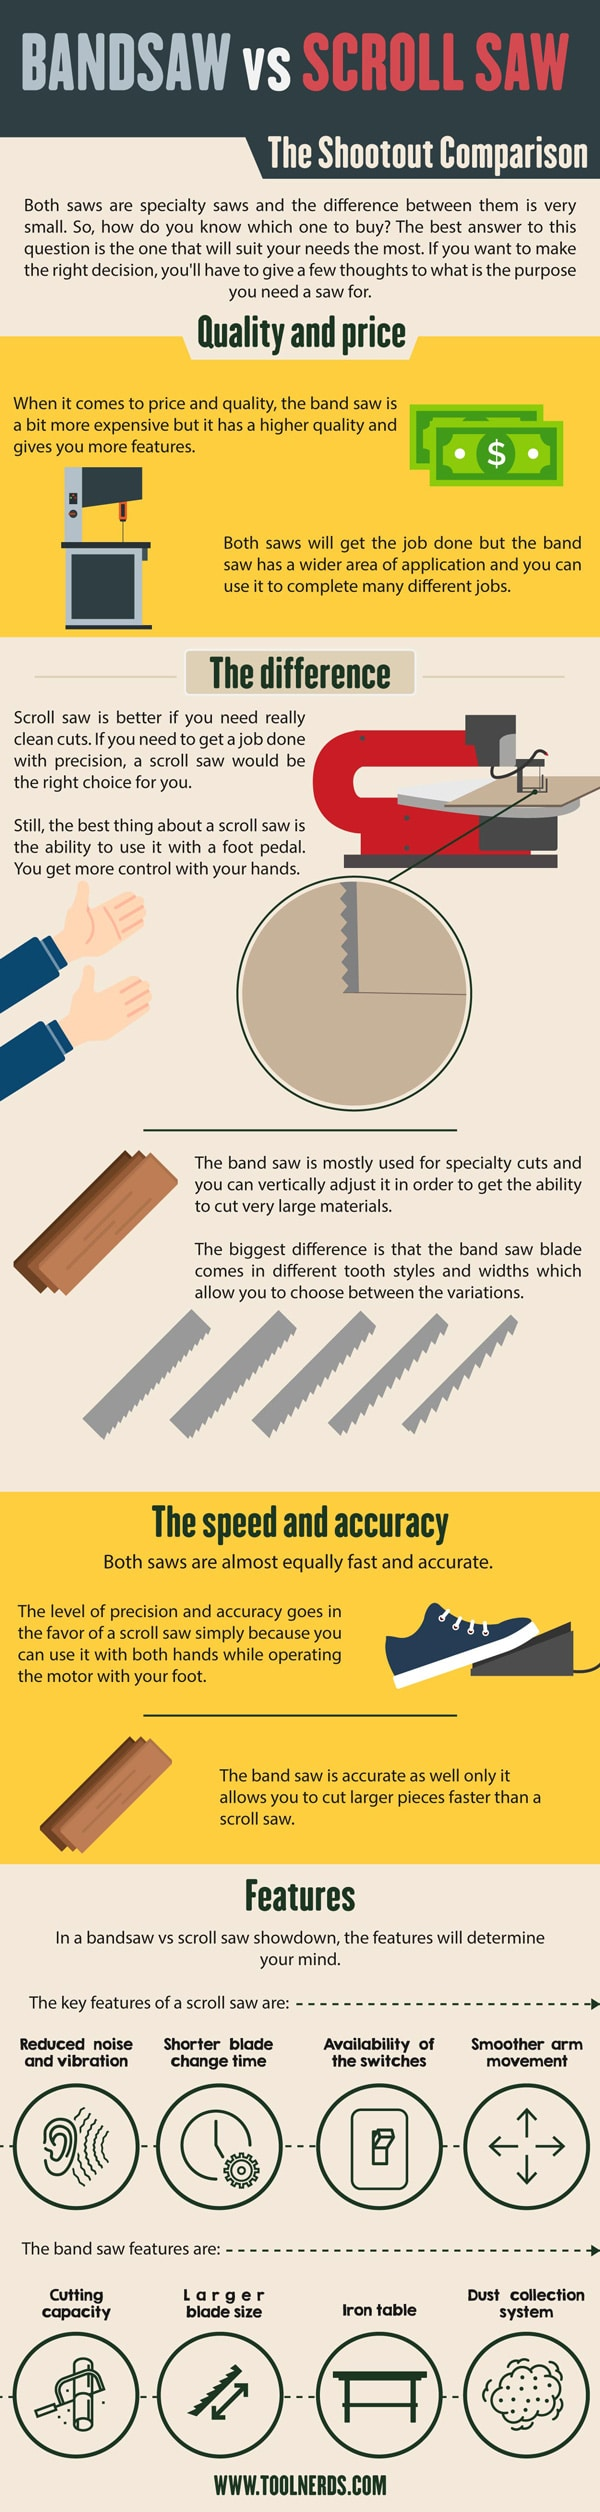 Bandsaw vs. Scroll Saw Infographic